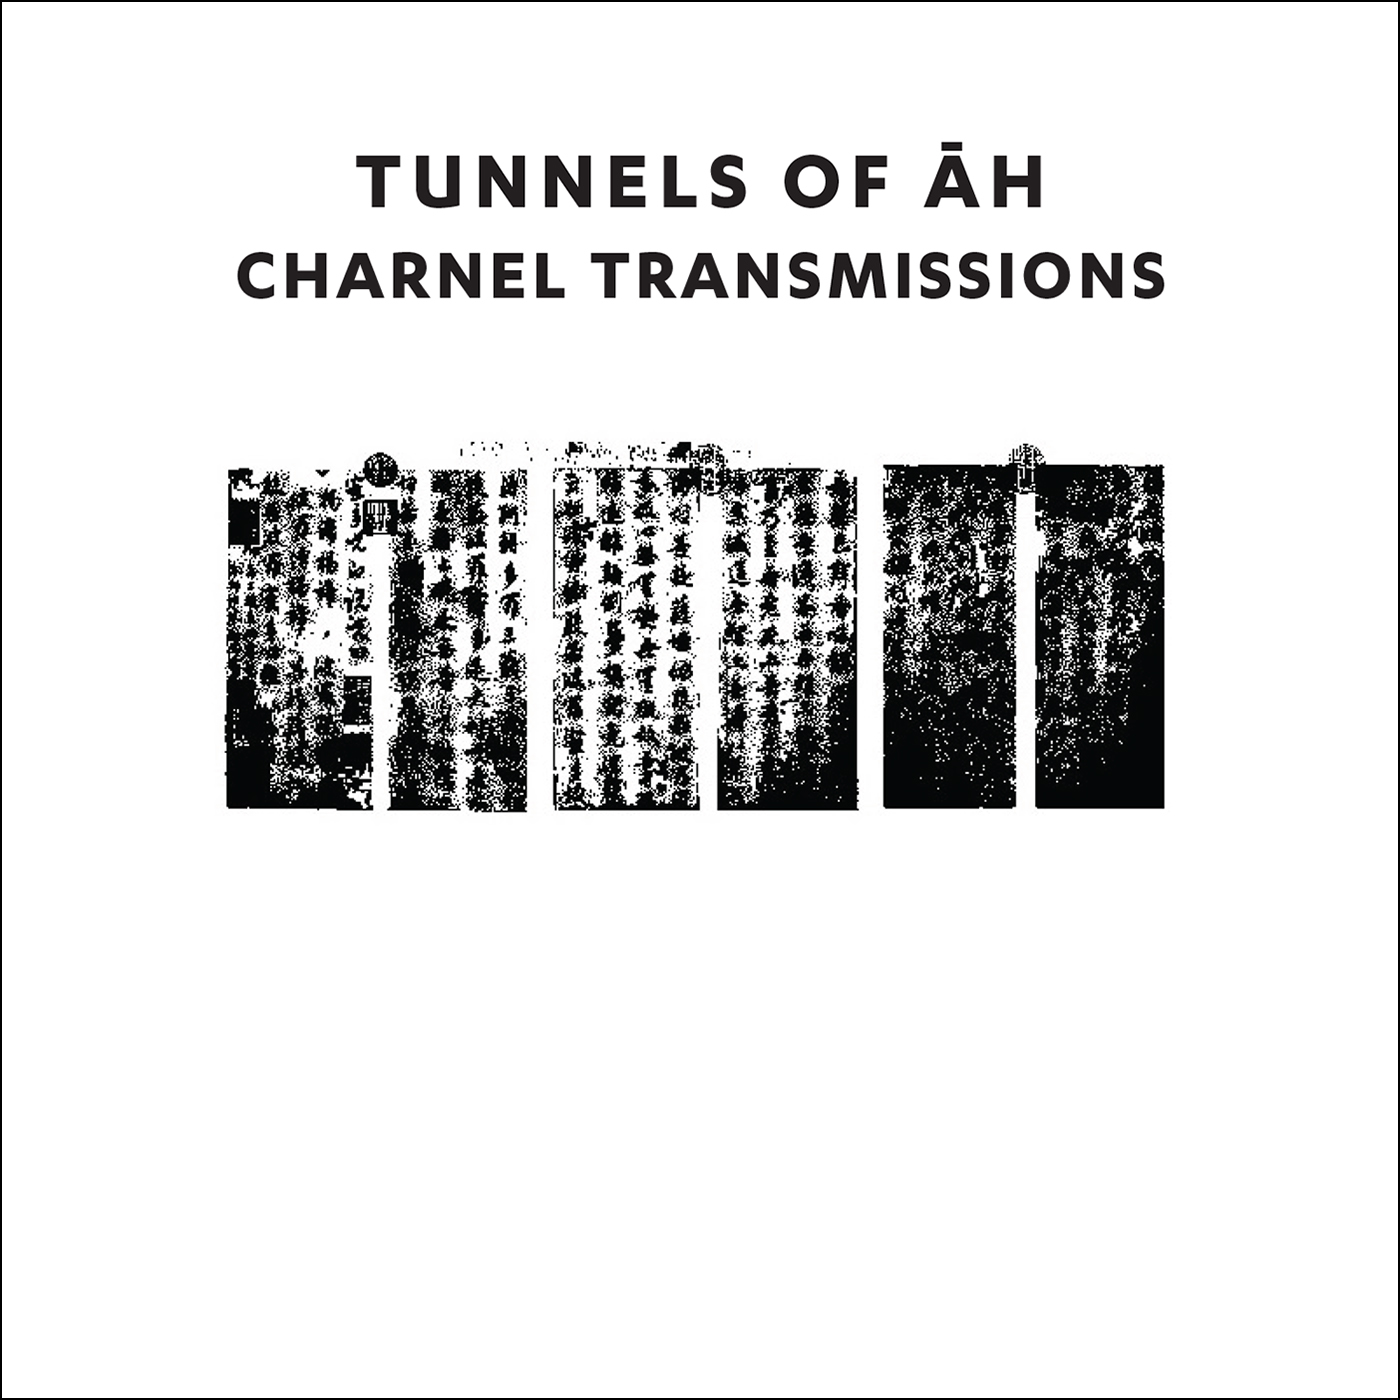 TUNNELS OF AH - Charnel Transmissions - Lo res album cover for web